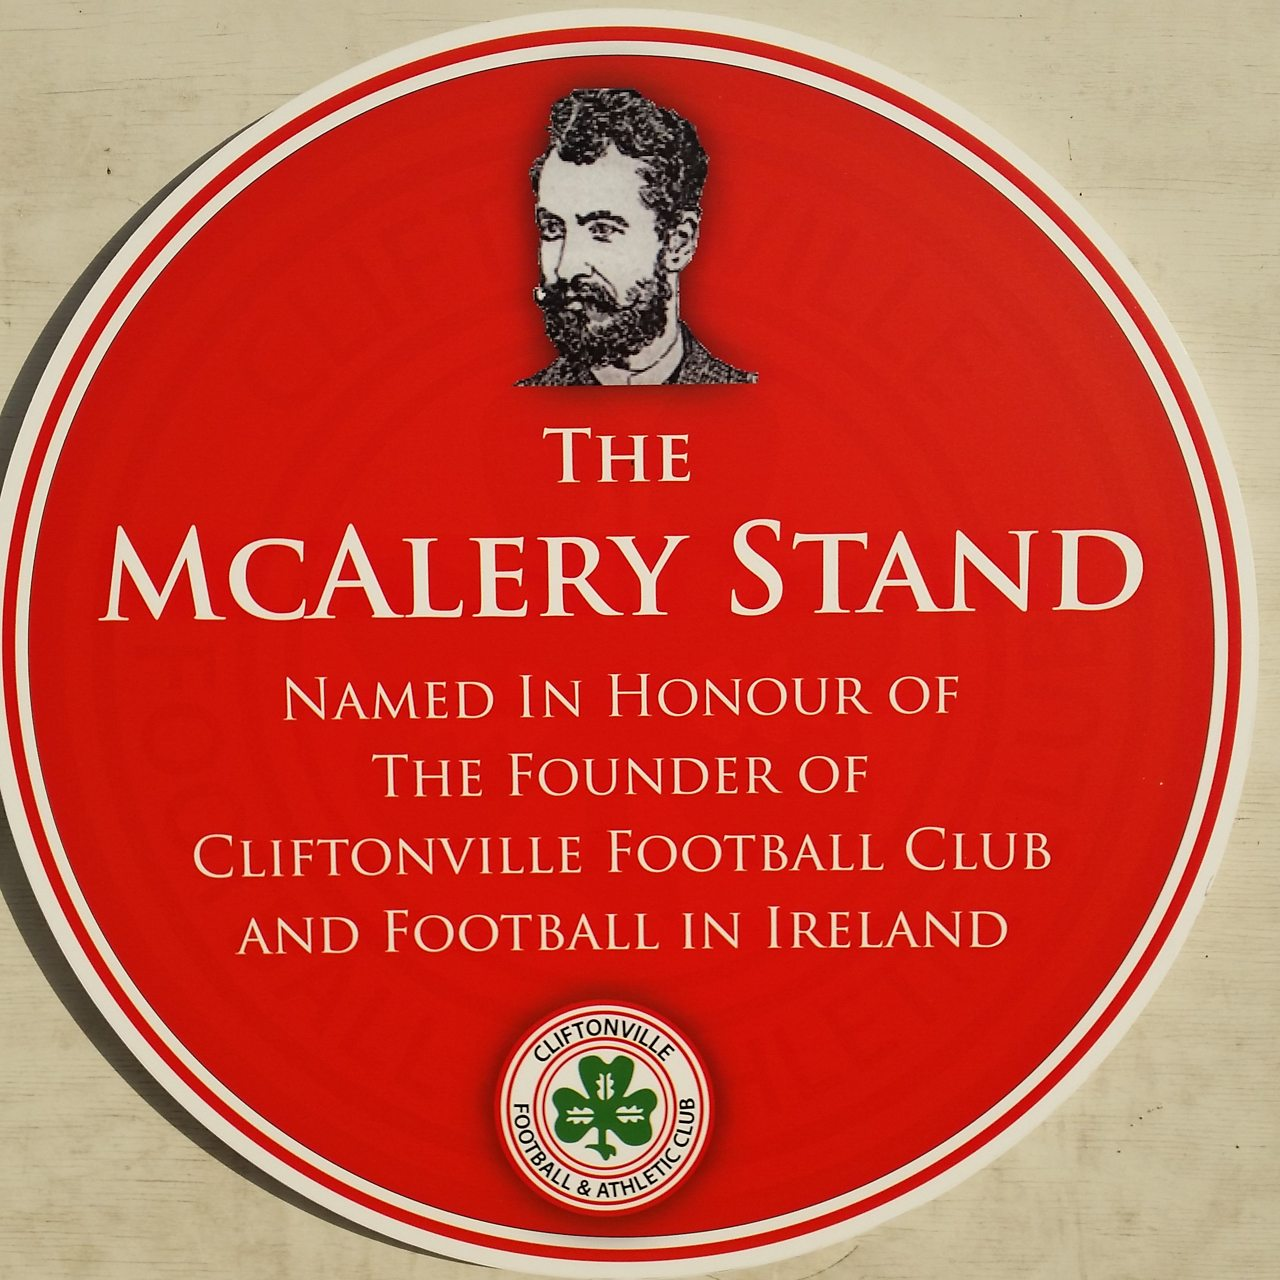 Plaque commemorating John McAlery